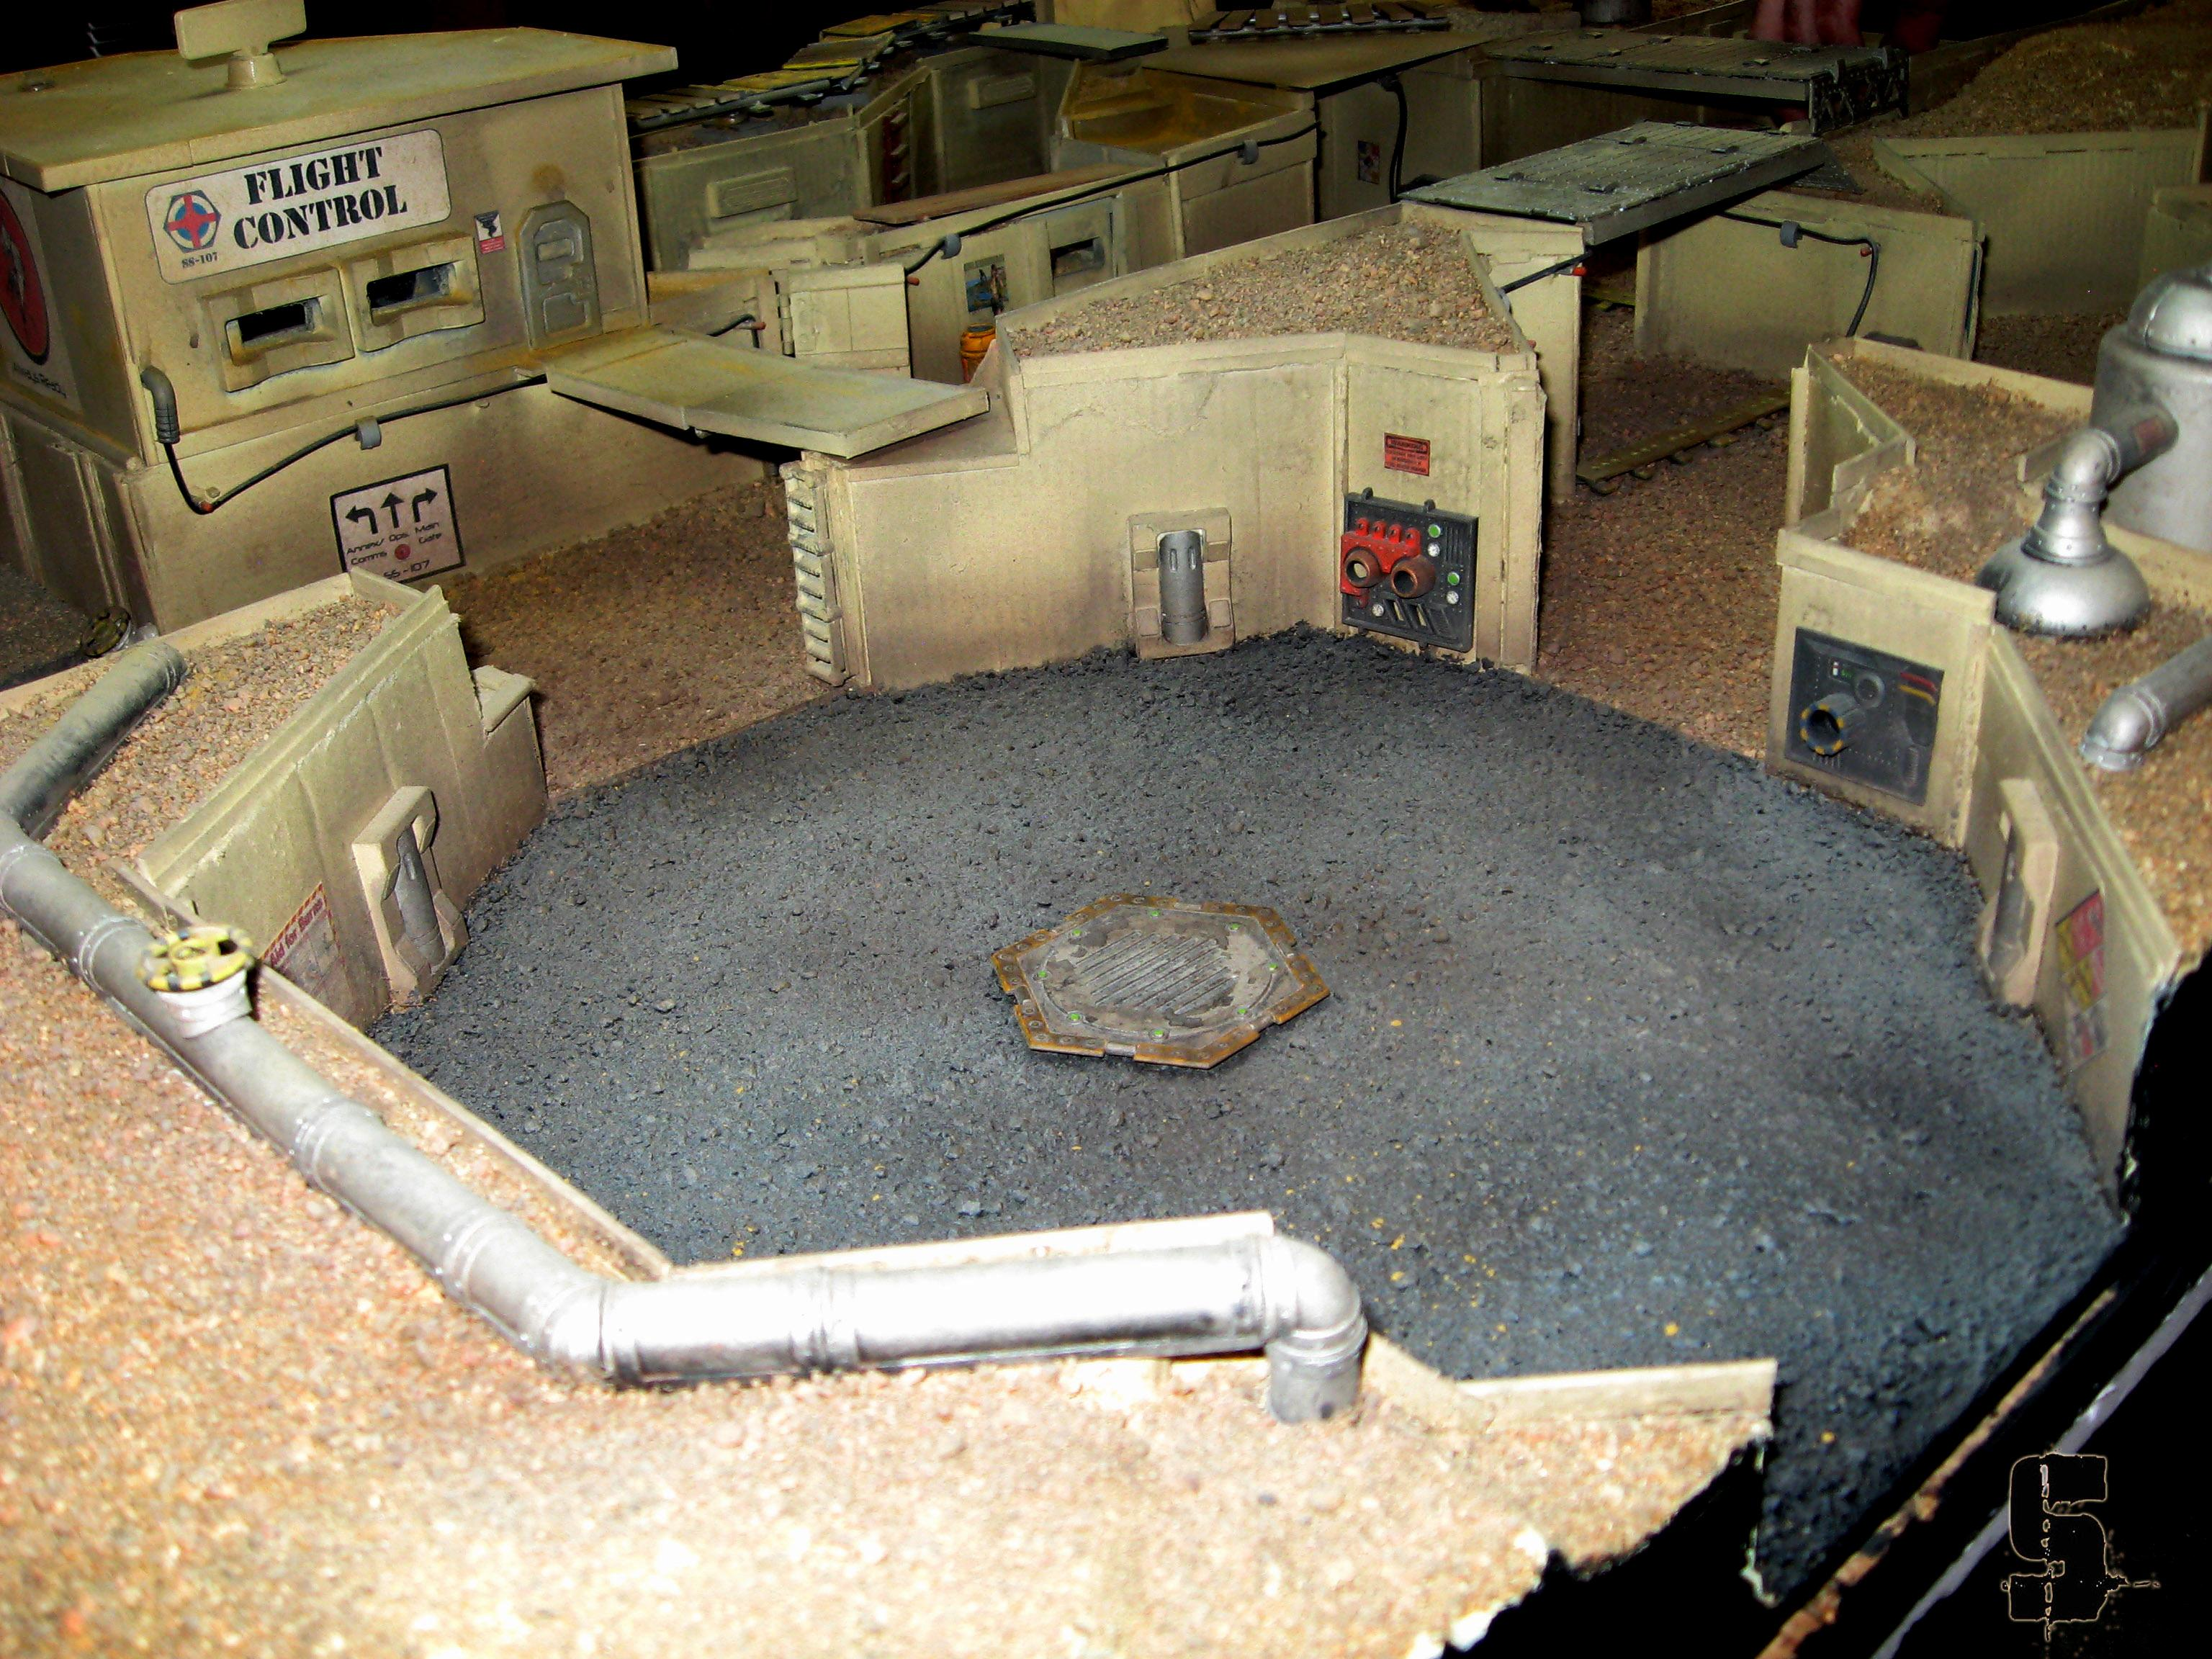 28mm, Commission, Desert, Infinity, Saw, Terrain, Trench